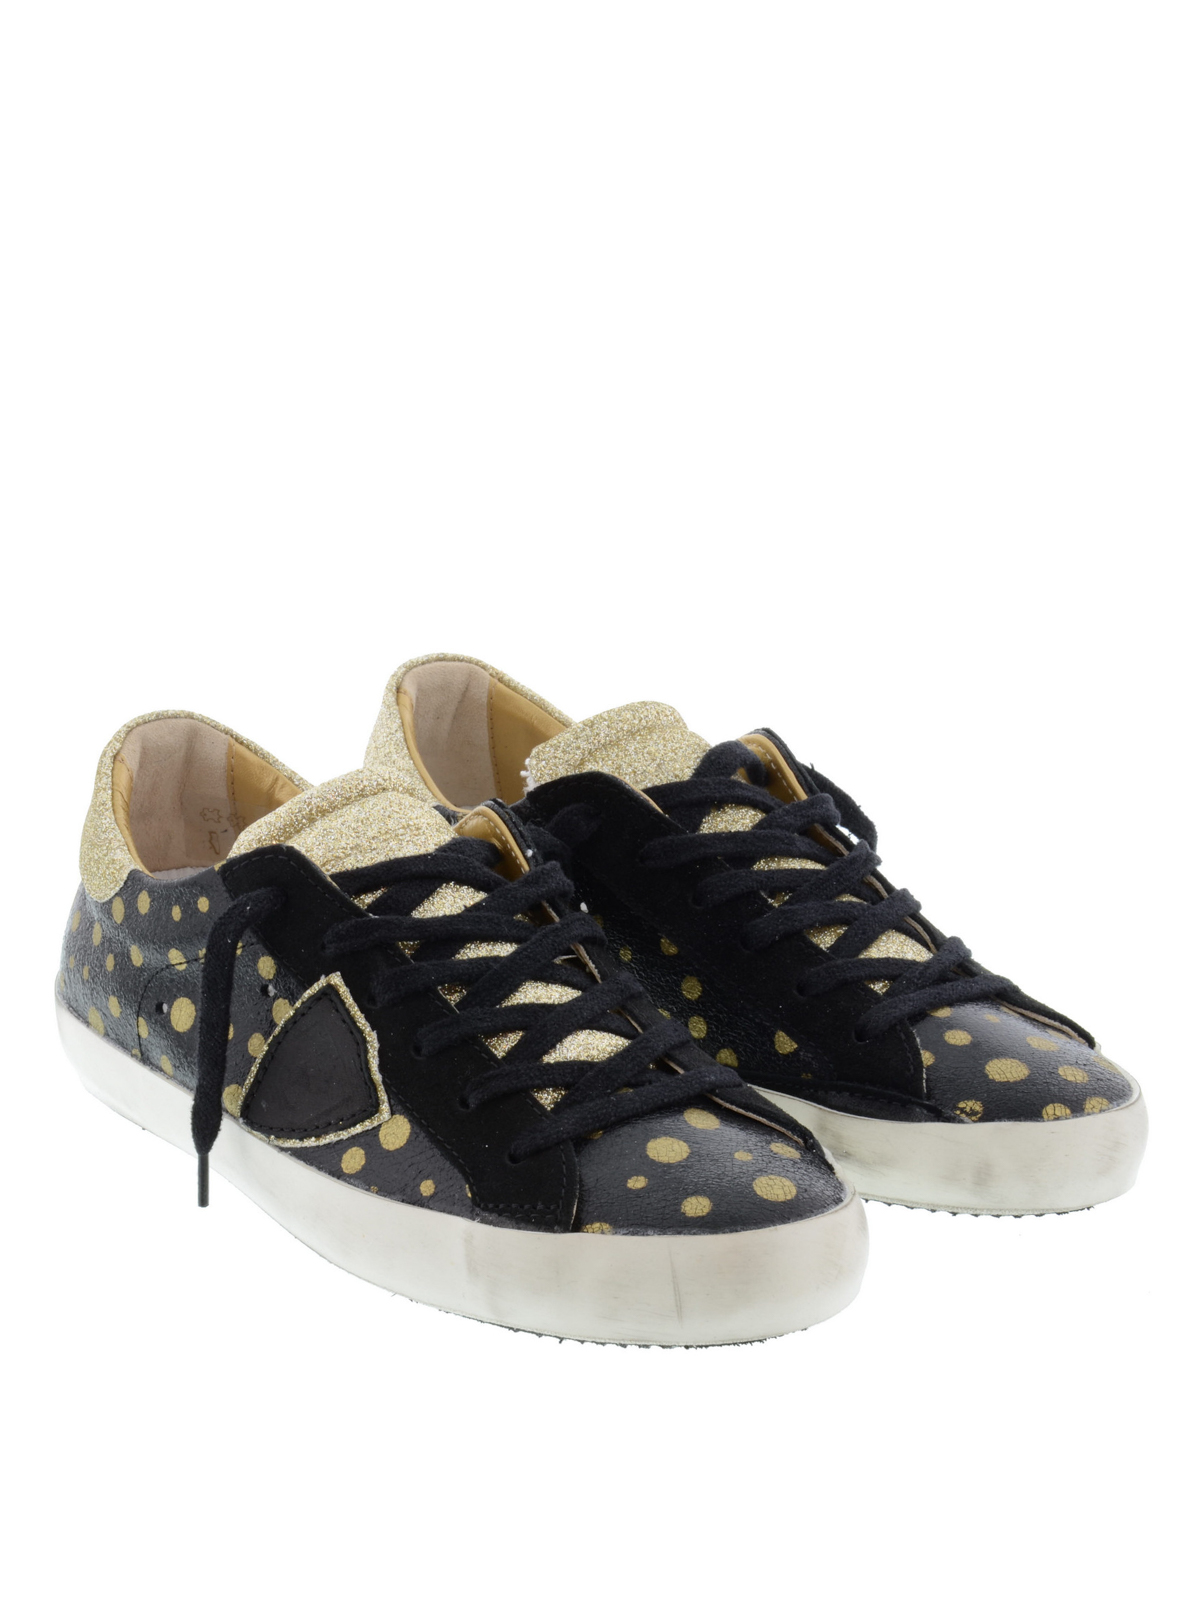 polka dot sneakers by philippe model trainers ikrix. Black Bedroom Furniture Sets. Home Design Ideas